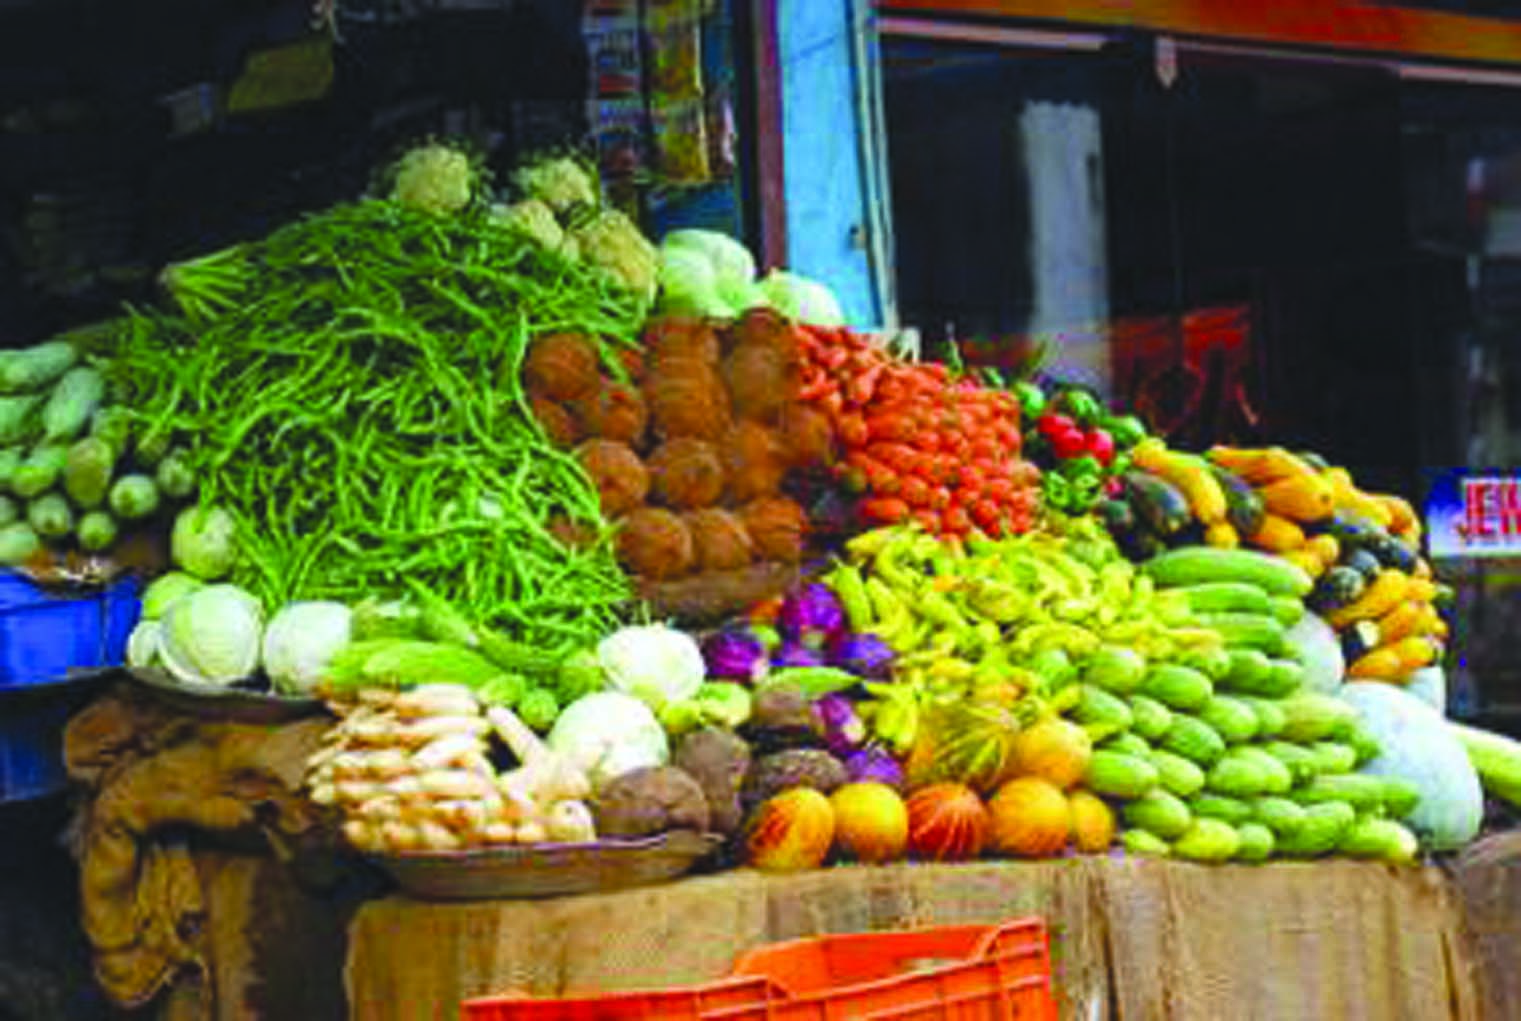 Regional countries vulnerable to food price hikes